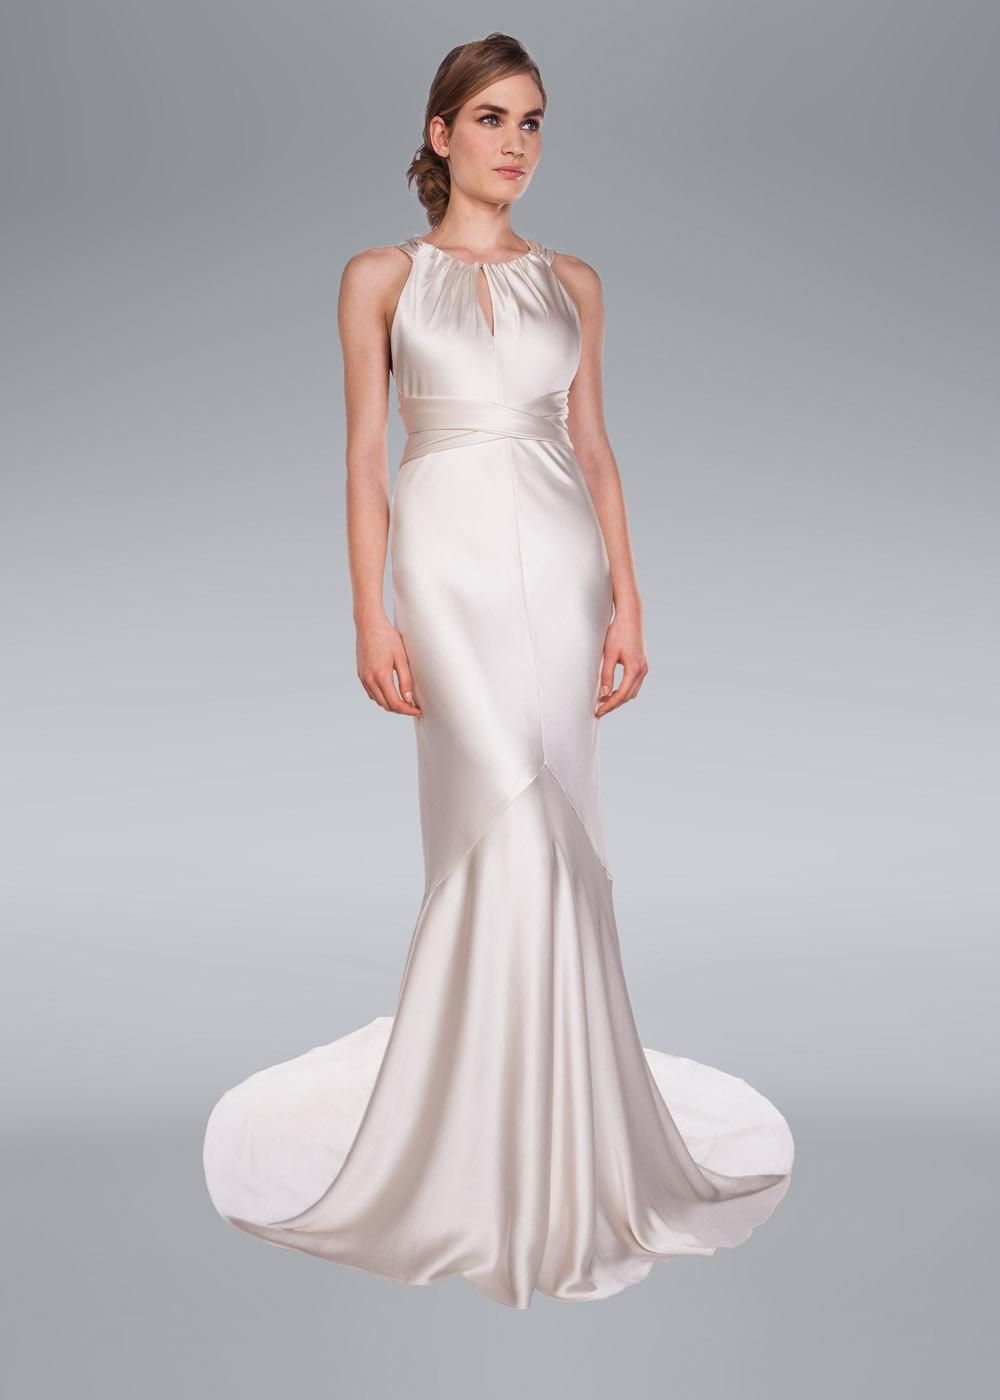 Superior Aisha Wedding Dress, Amanda Wakeley Designer Collection